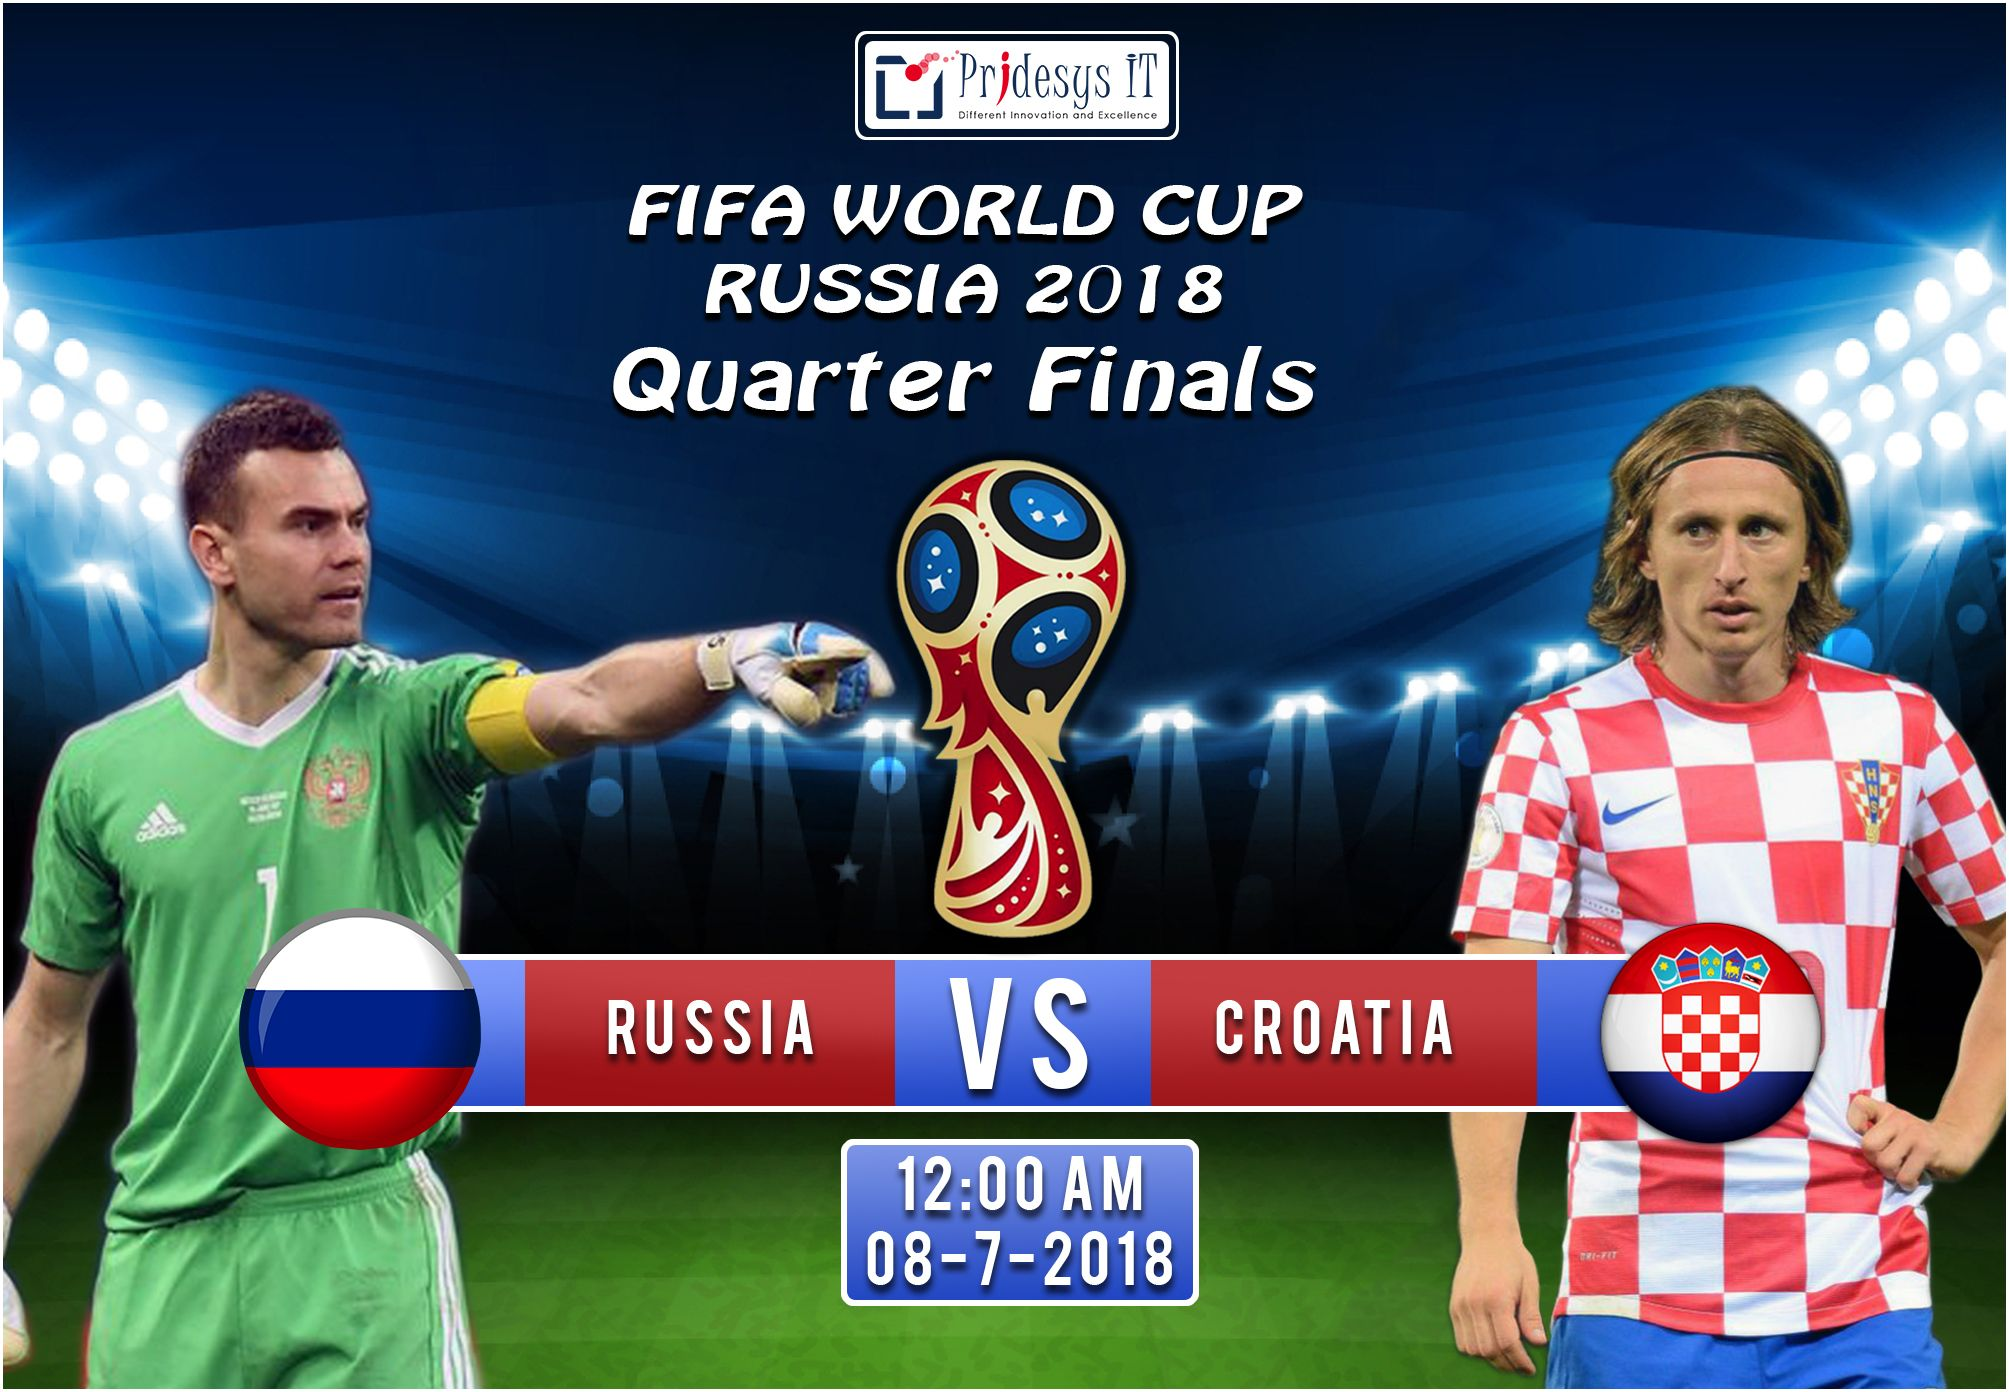 Get Ready For The Today S Exiting Matches Of Fifa World Cup 2018 Sweden Vs England 8pm Russia Vs Croatia 12am Sweden En Sweden Vs England Fifa World Cup